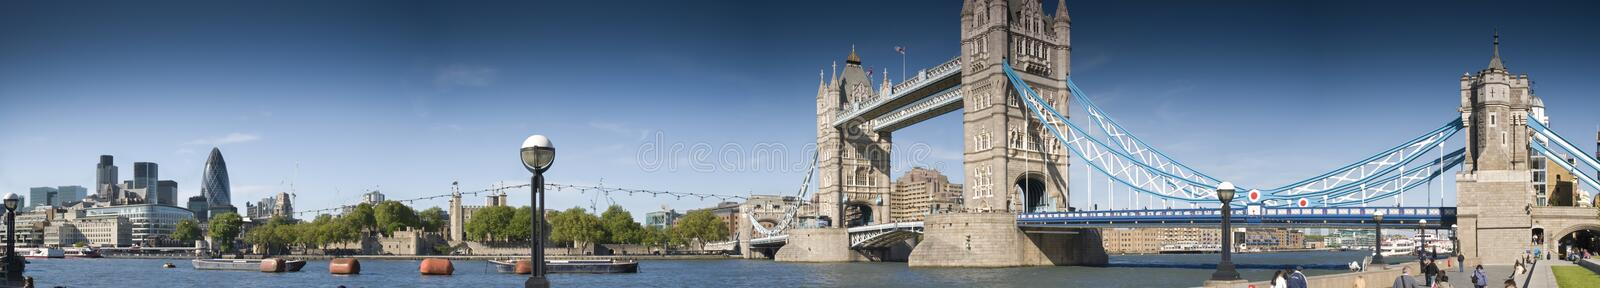 HUGE-Central London panorama royalty free stock image